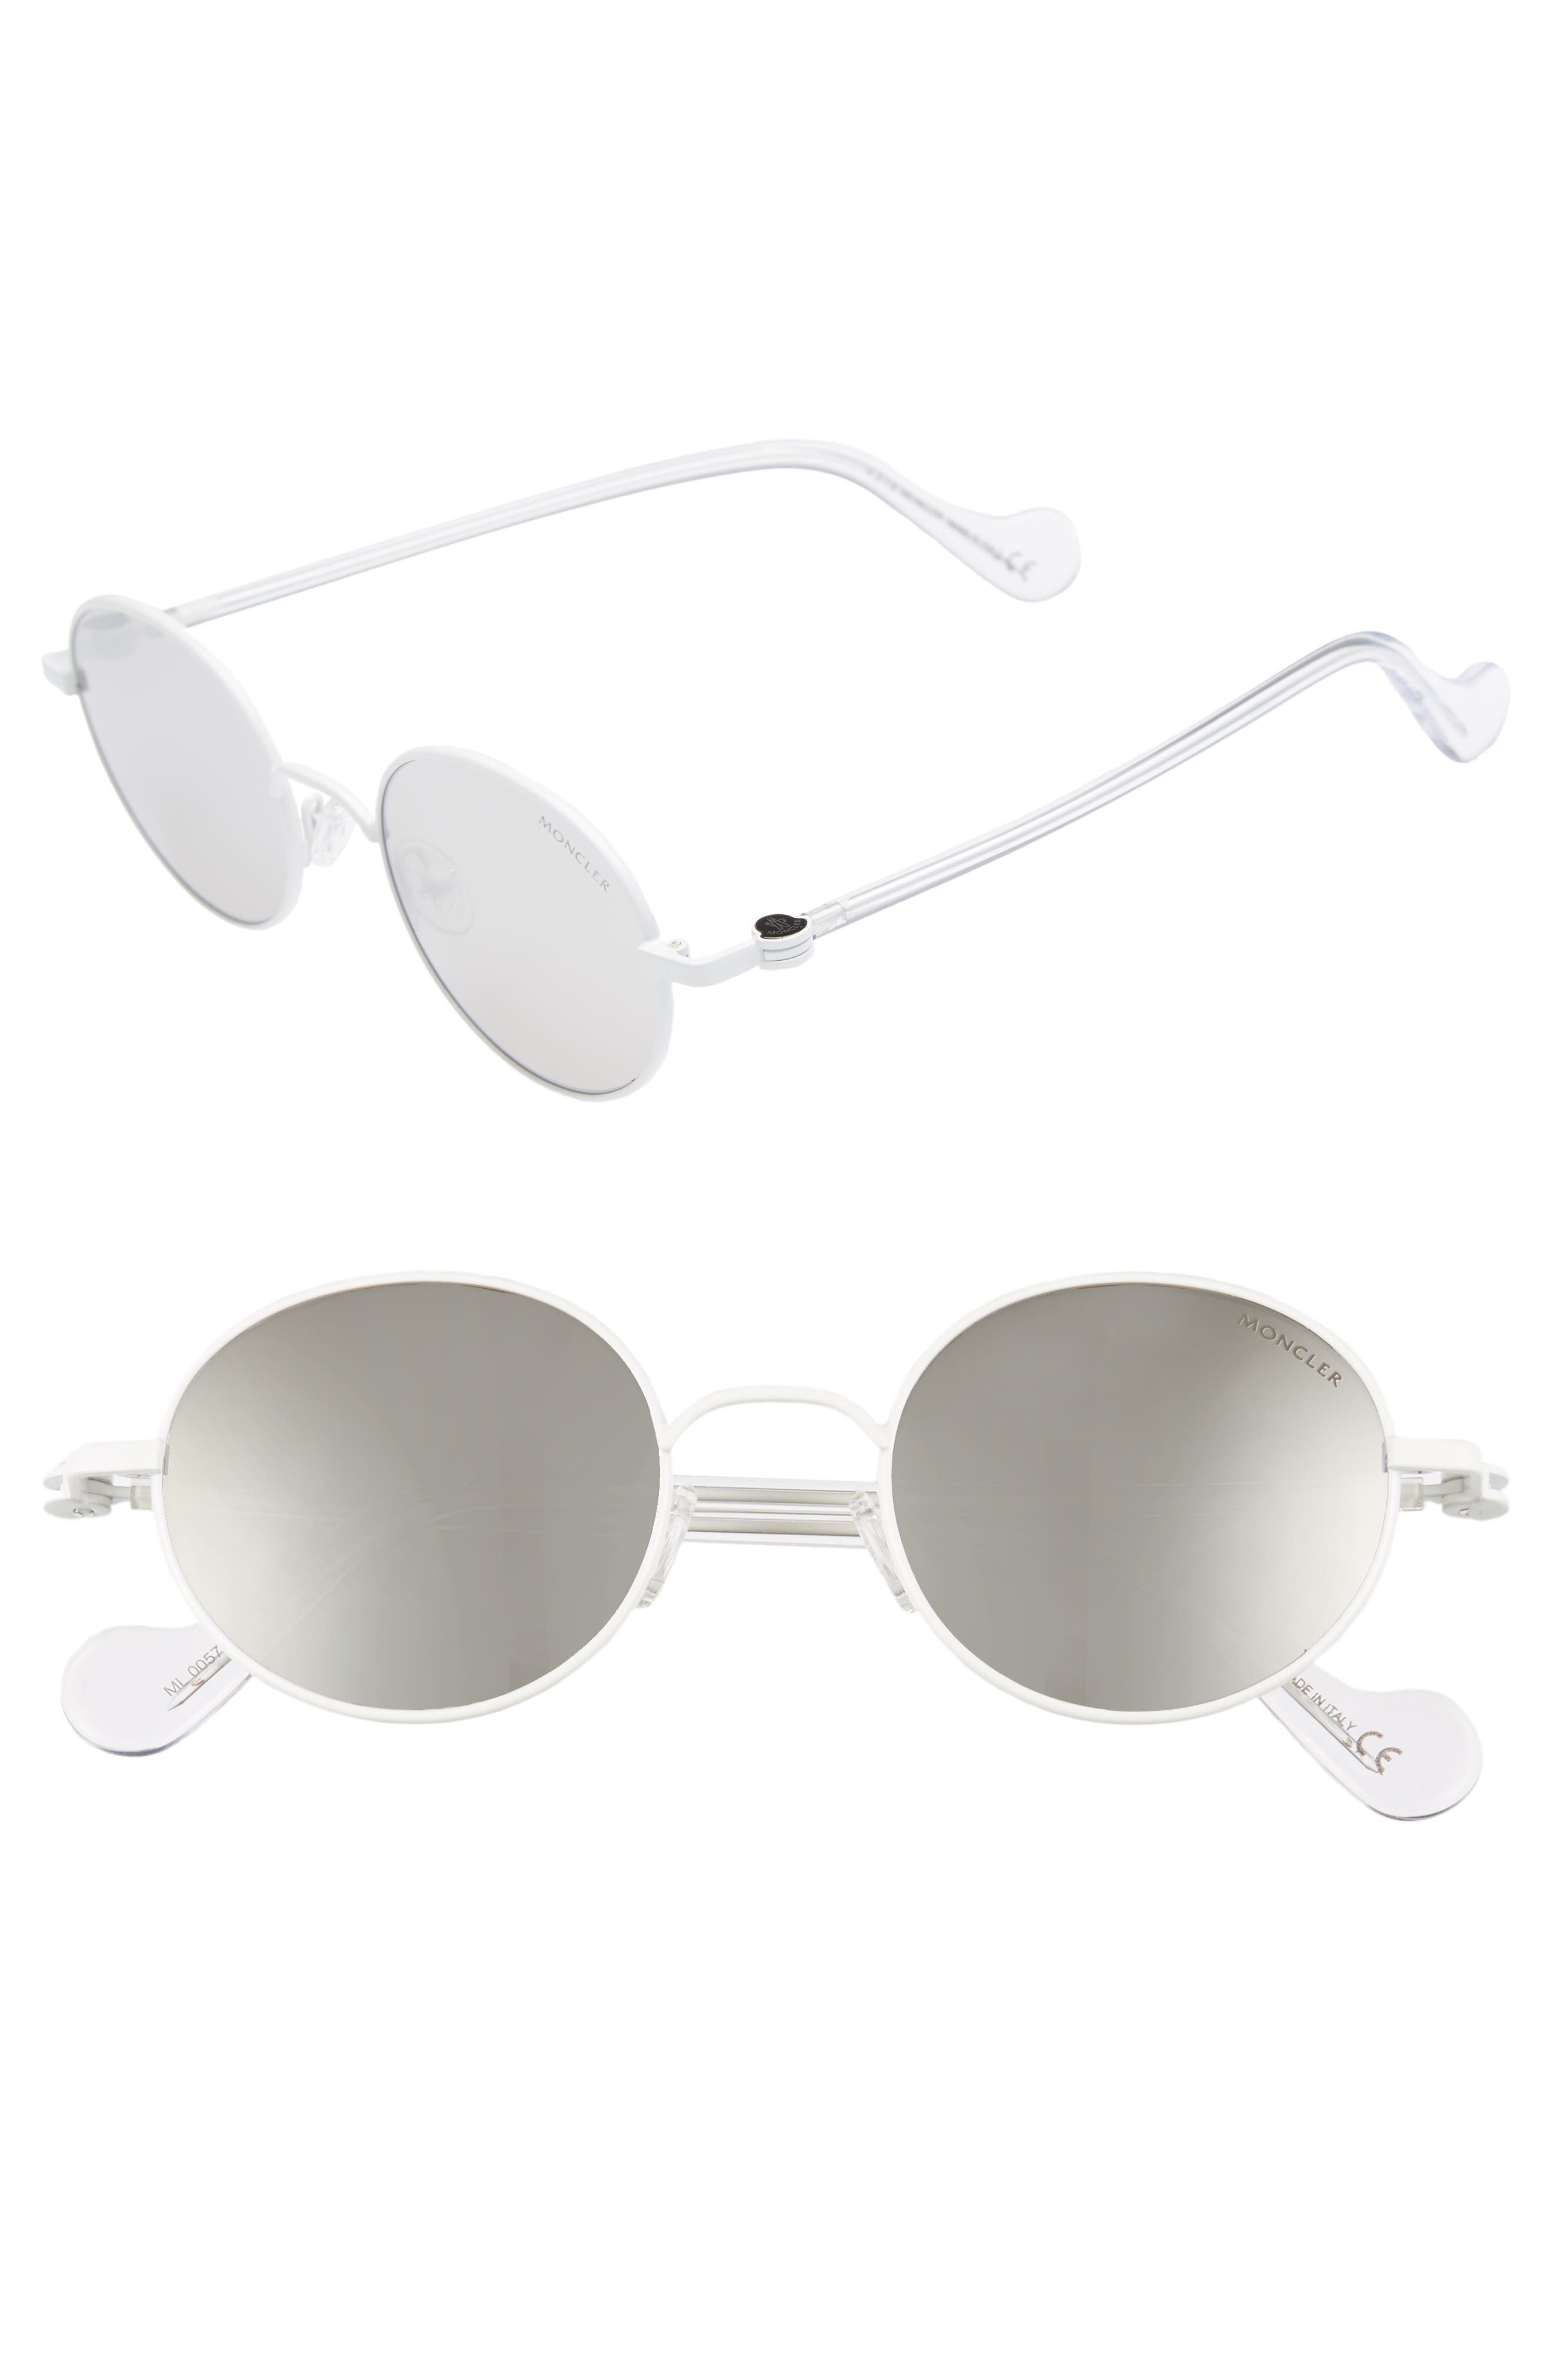 MONCLER, 49mm Round Metal Sunglasses, Main thumbnail 1, color, WHITE/ SMOKE MIRROR